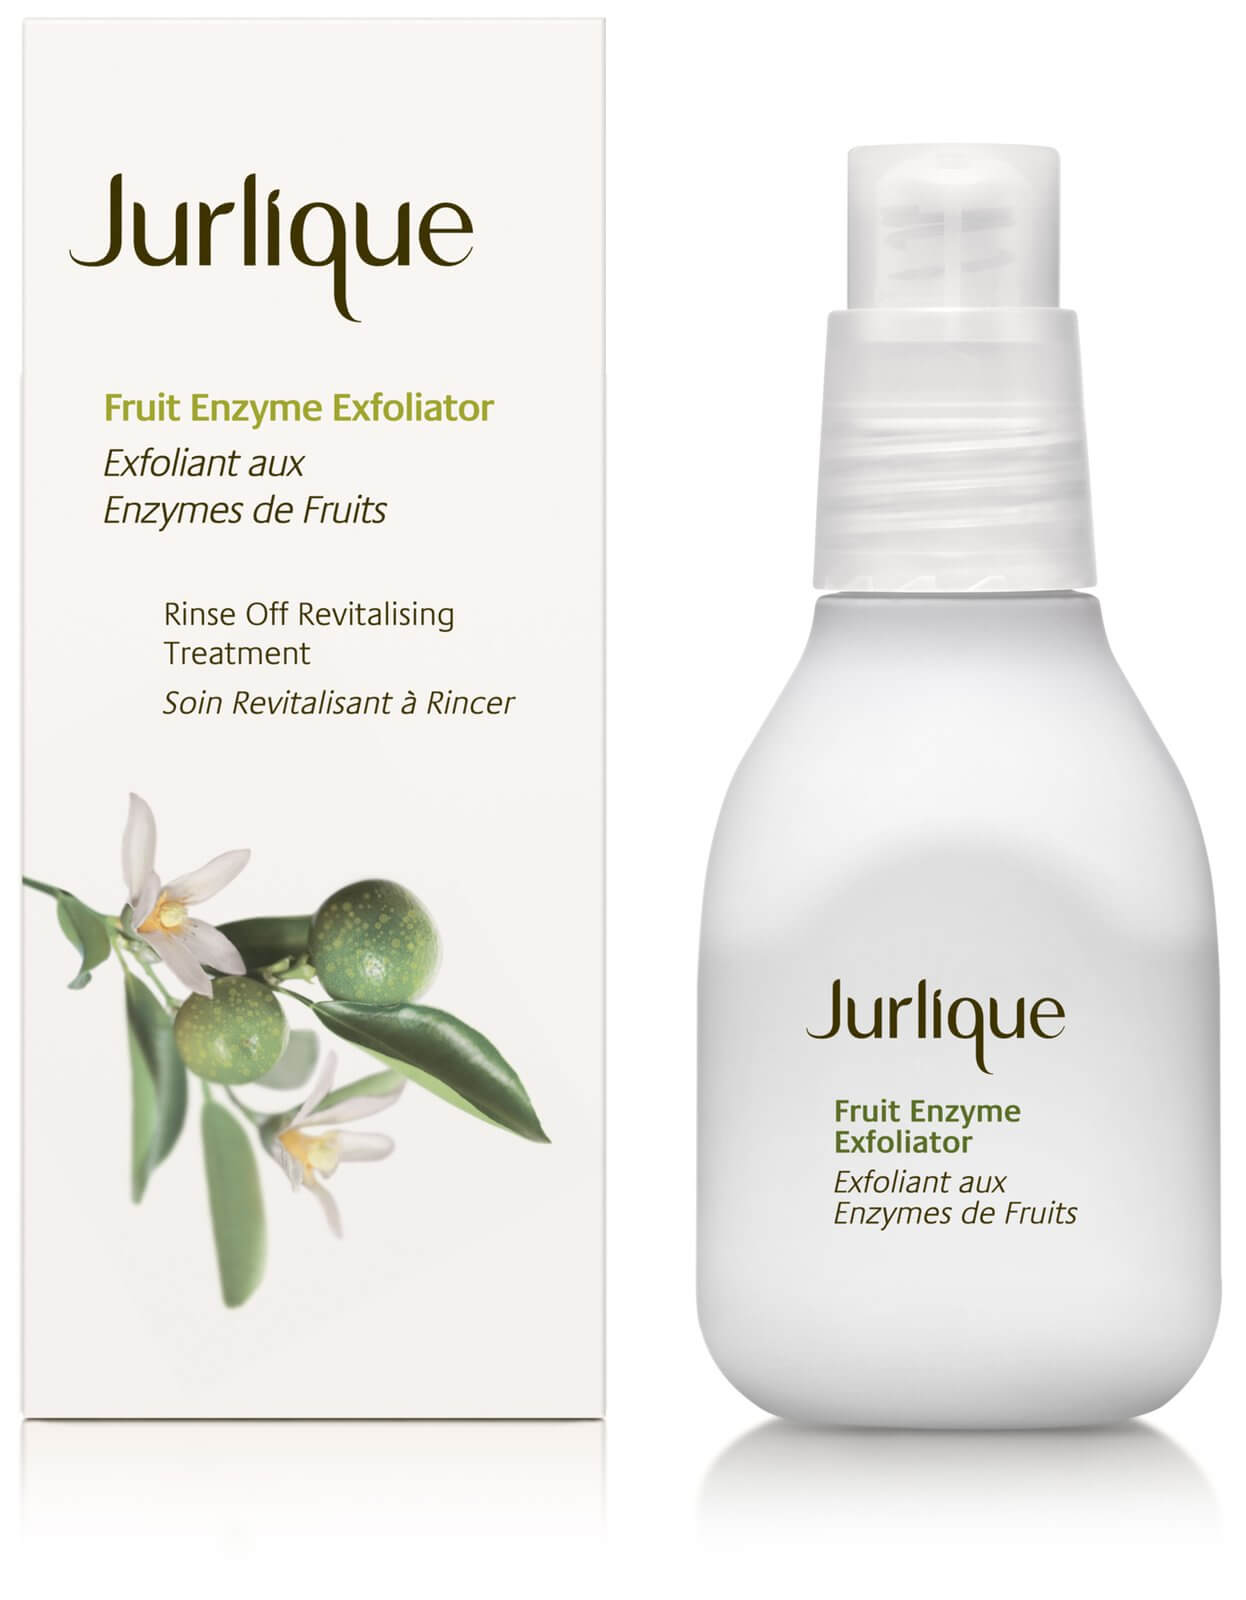 jurlique_fruit_enzyme_exfoliator